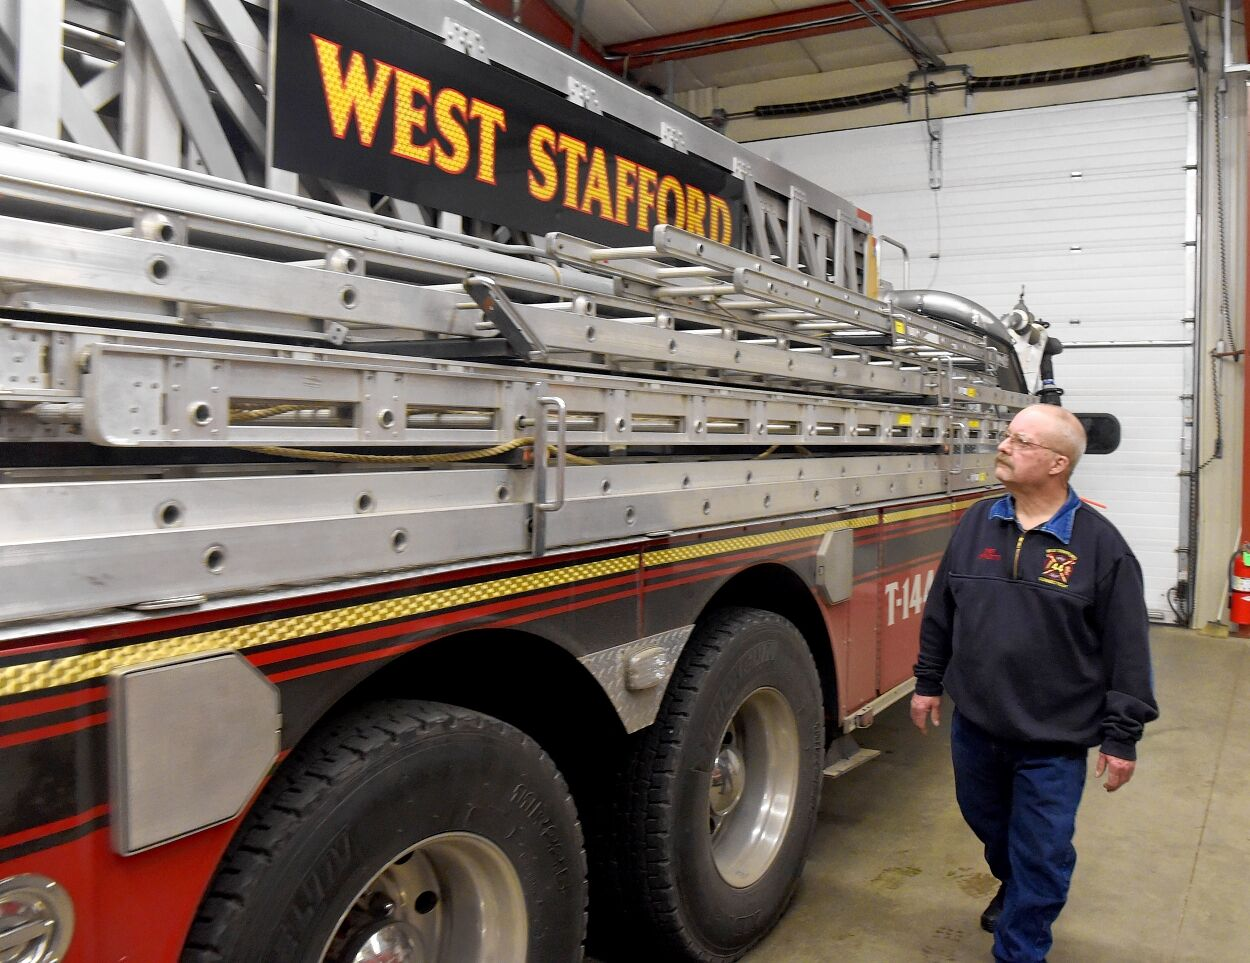 West Stafford Fire Department celebrates 75th anniversary